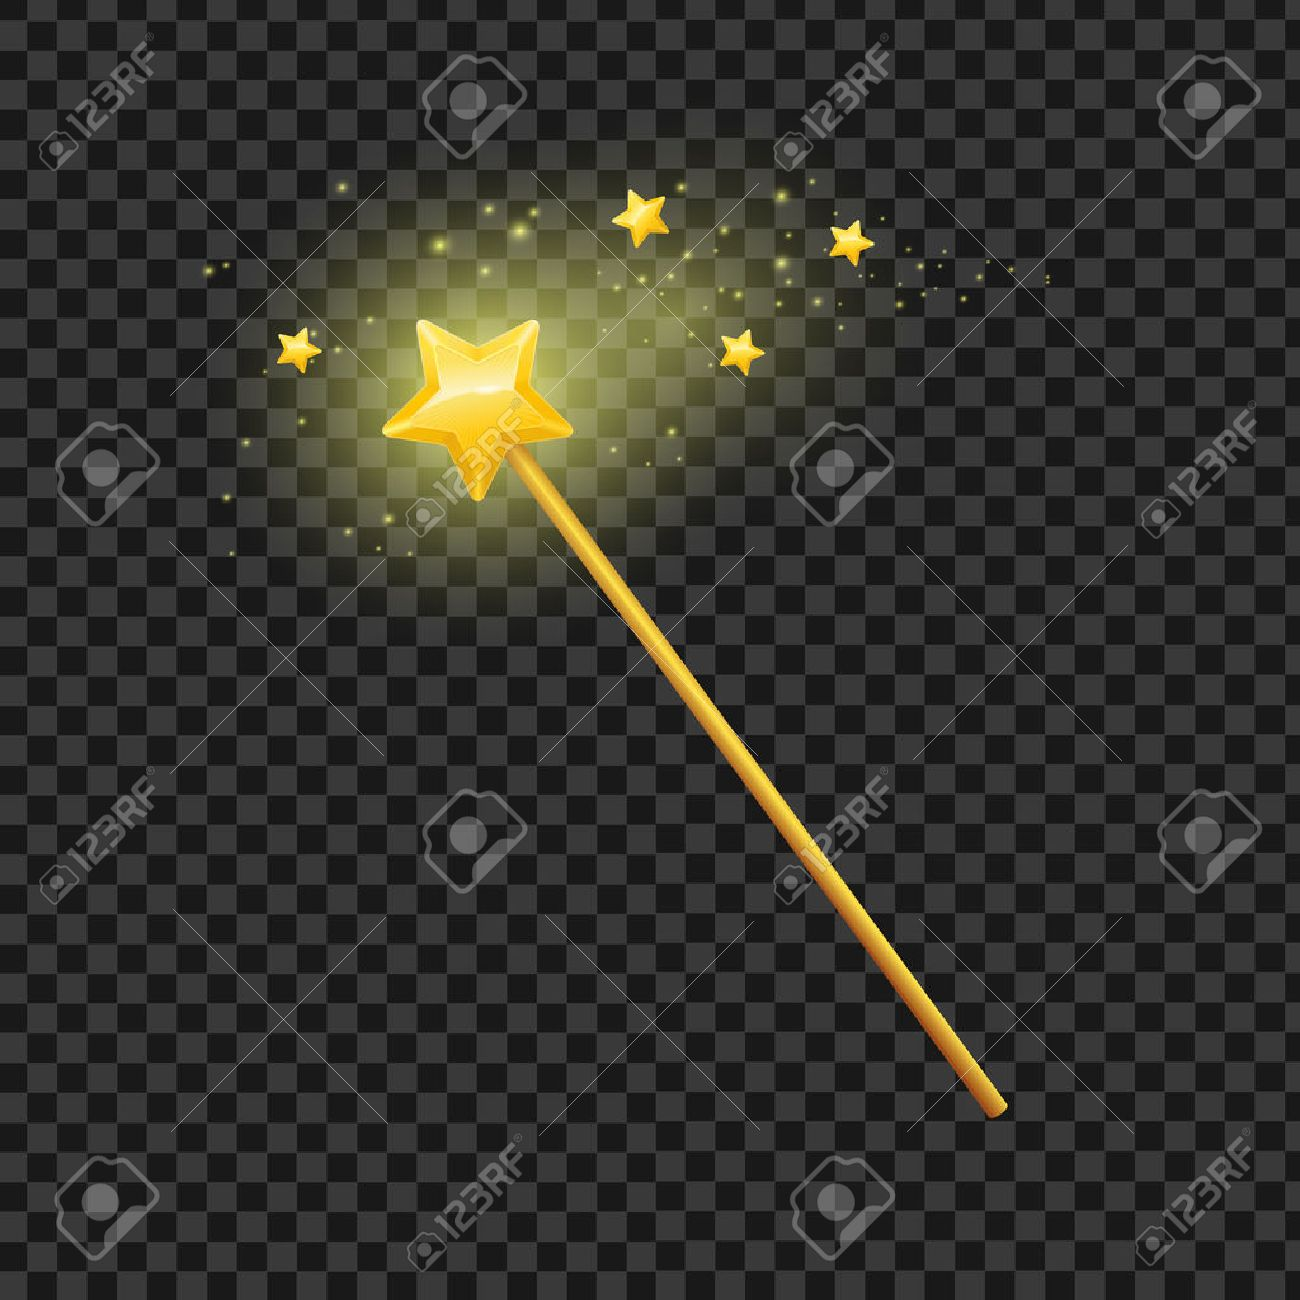 Golden magic wand with star on transparent background symbol golden magic wand with star on transparent background symbol of magic imagination and witchcraft biocorpaavc Choice Image